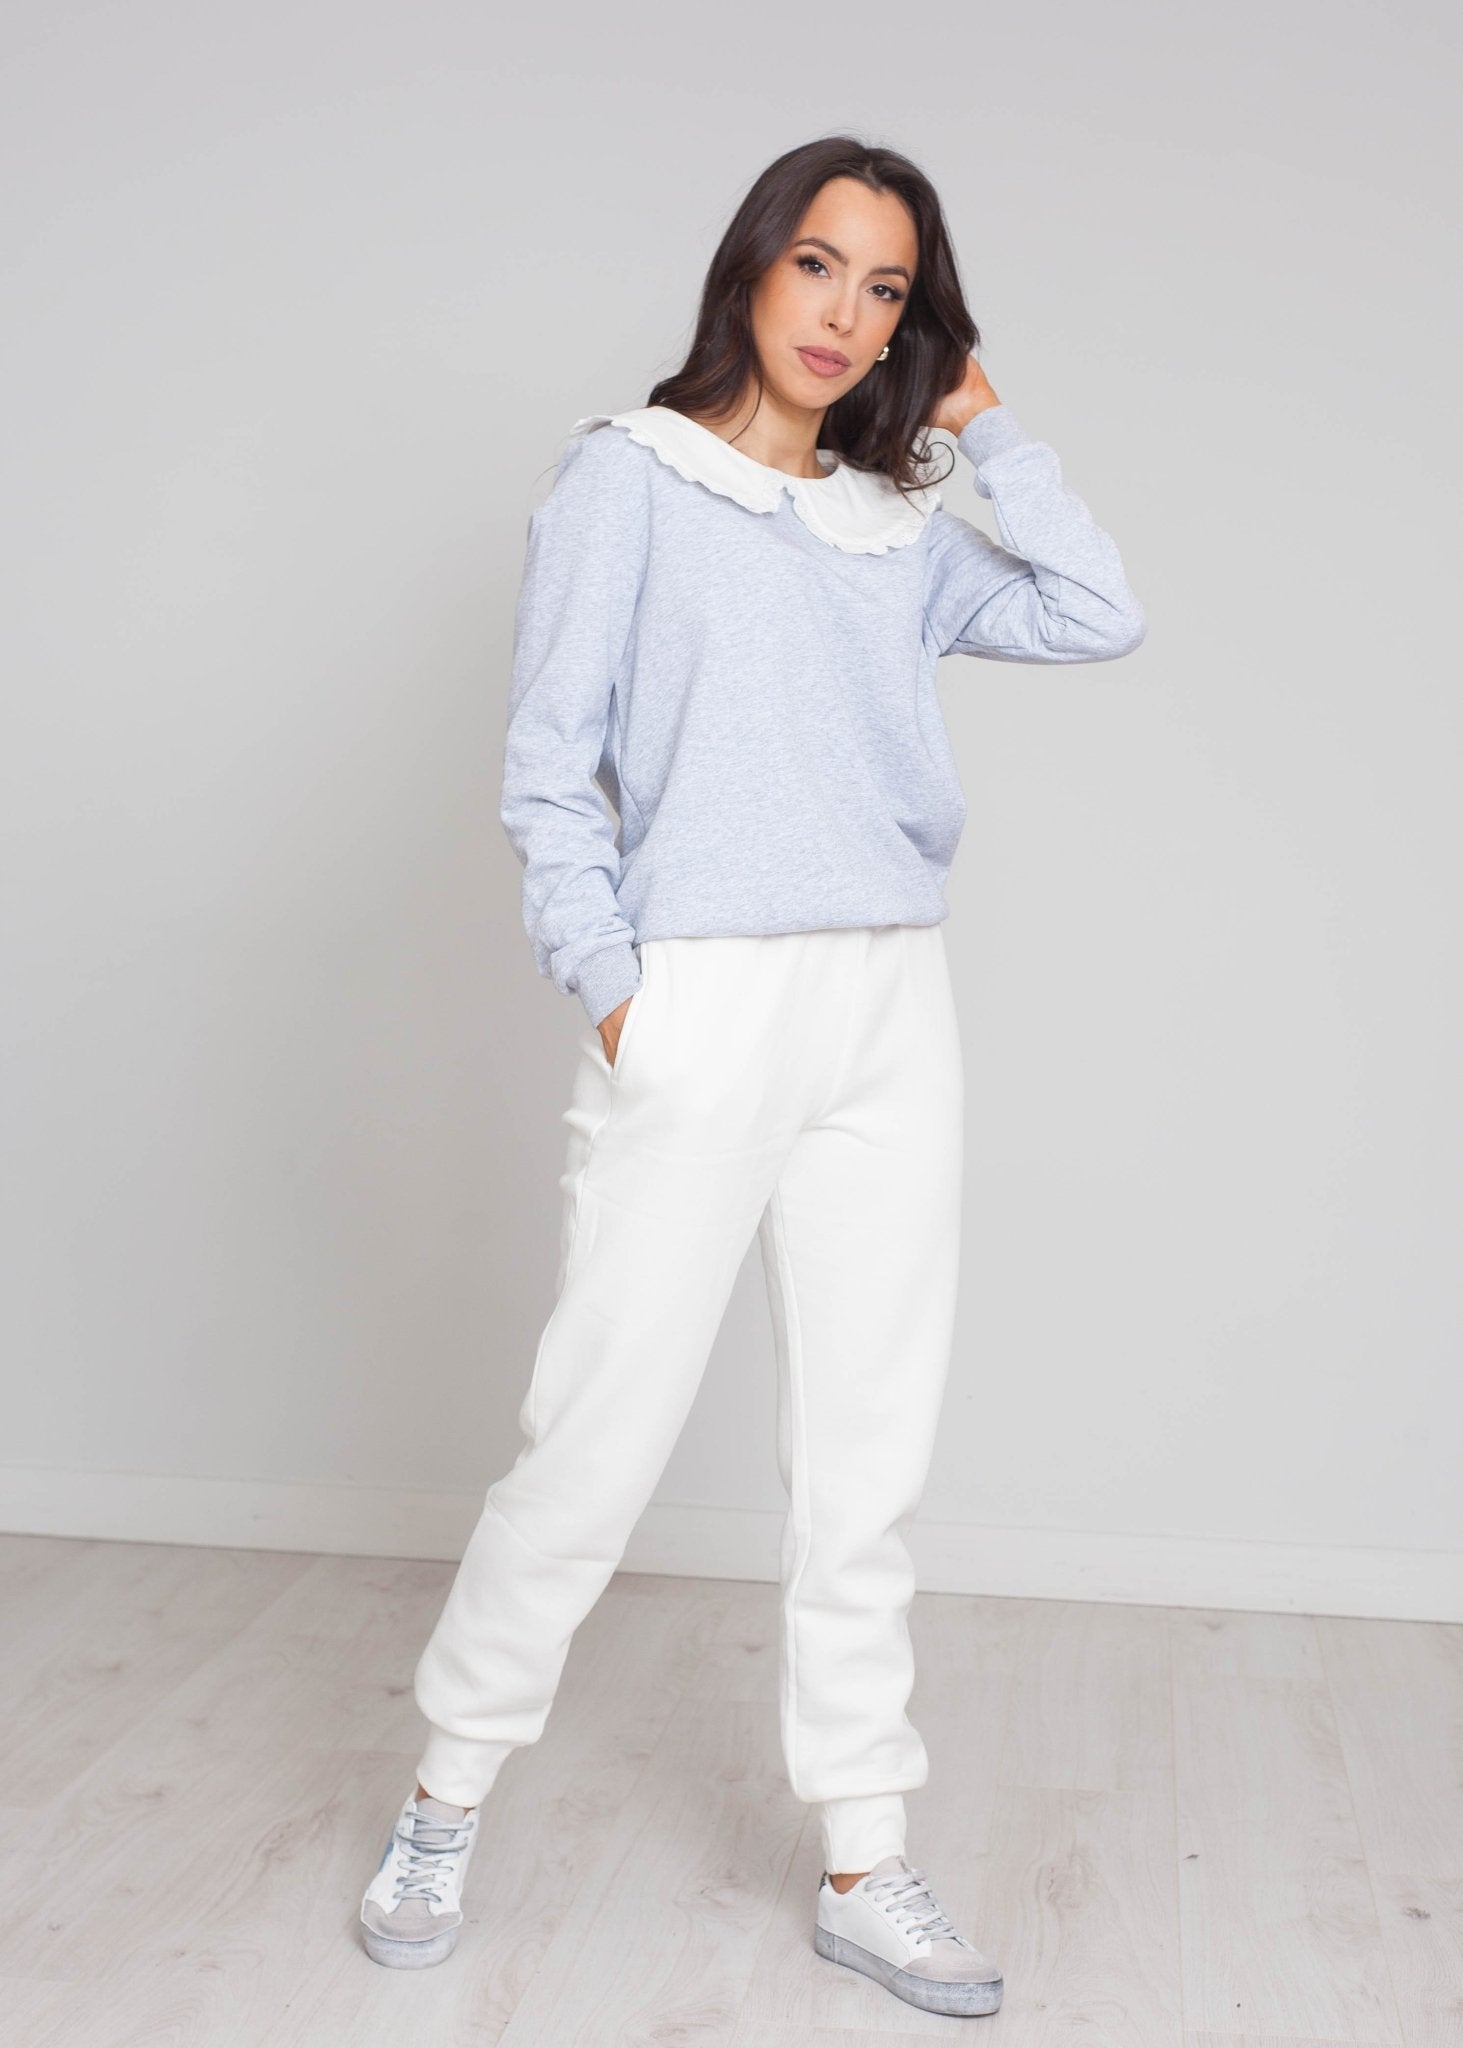 Elsa Joggers In White - The Walk in Wardrobe